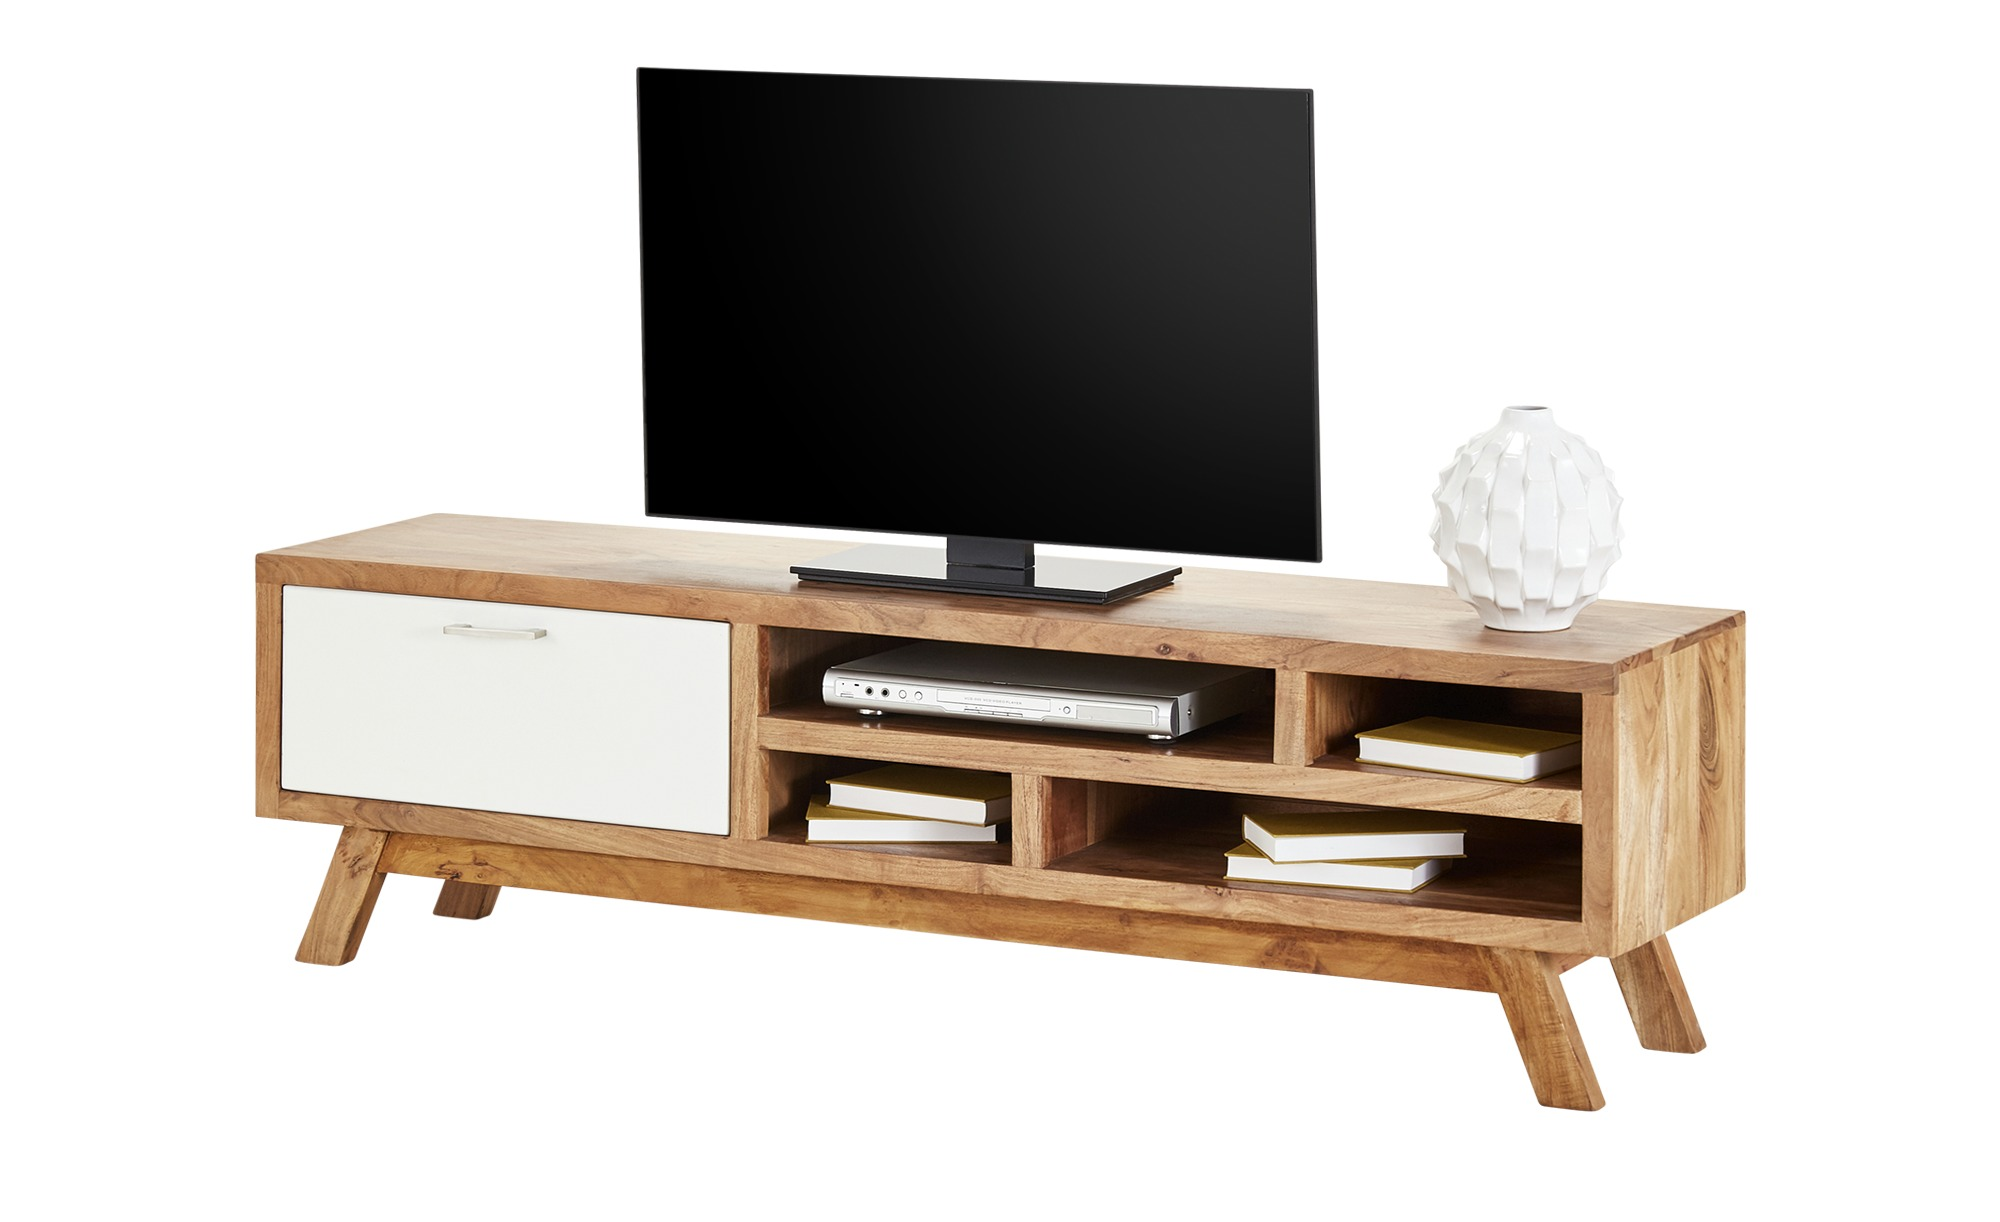 woodford tv lowboard washington breite 170 cm h he 50 cm online kaufen bei woonio. Black Bedroom Furniture Sets. Home Design Ideas